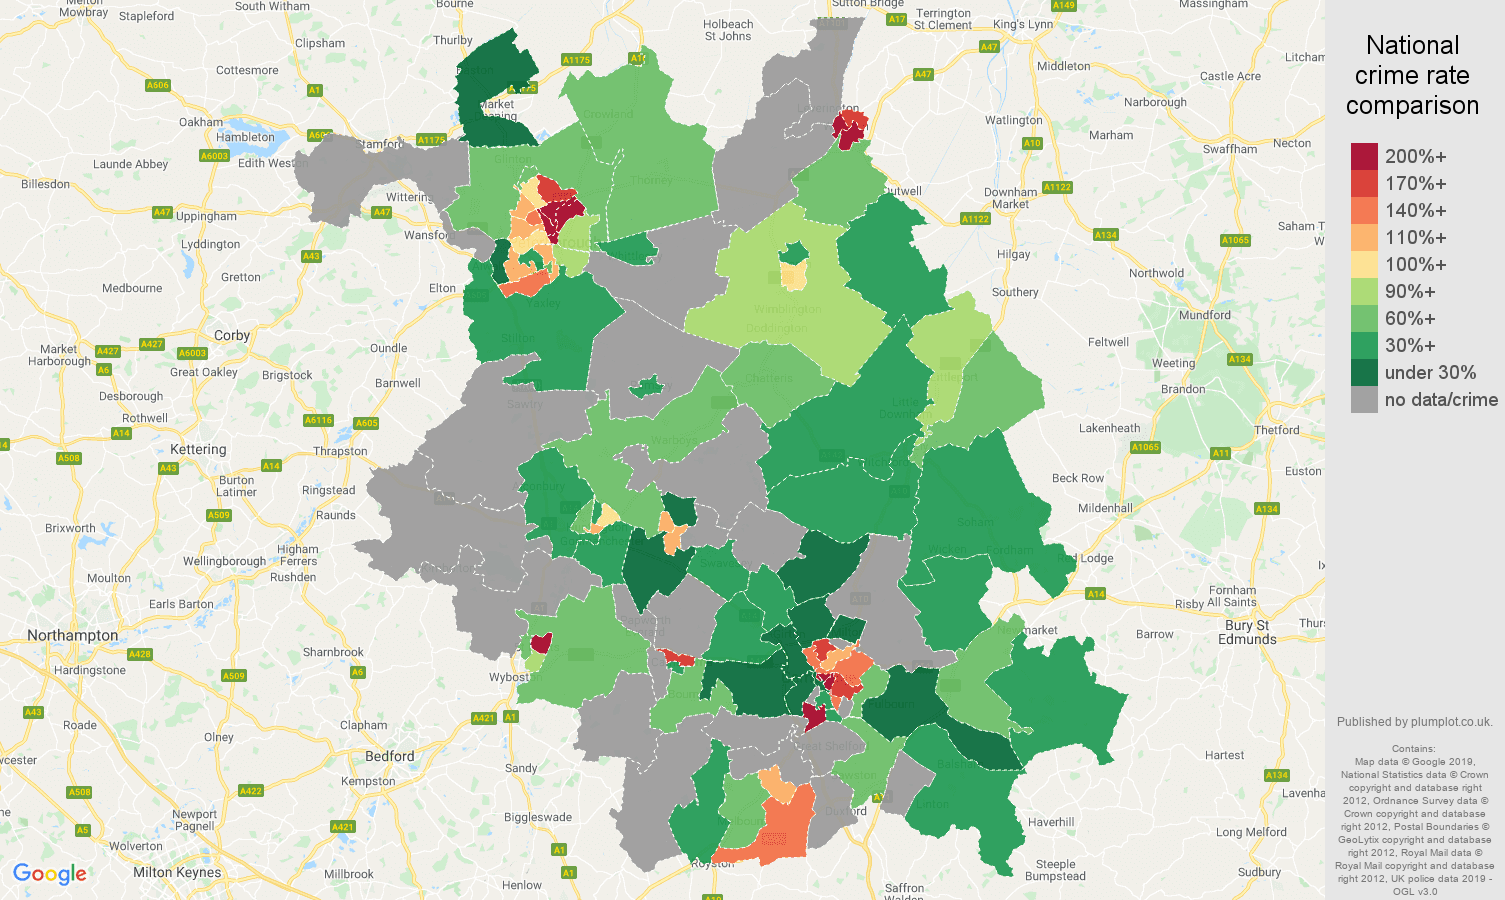 Cambridgeshire possession of weapons crime rate comparison map